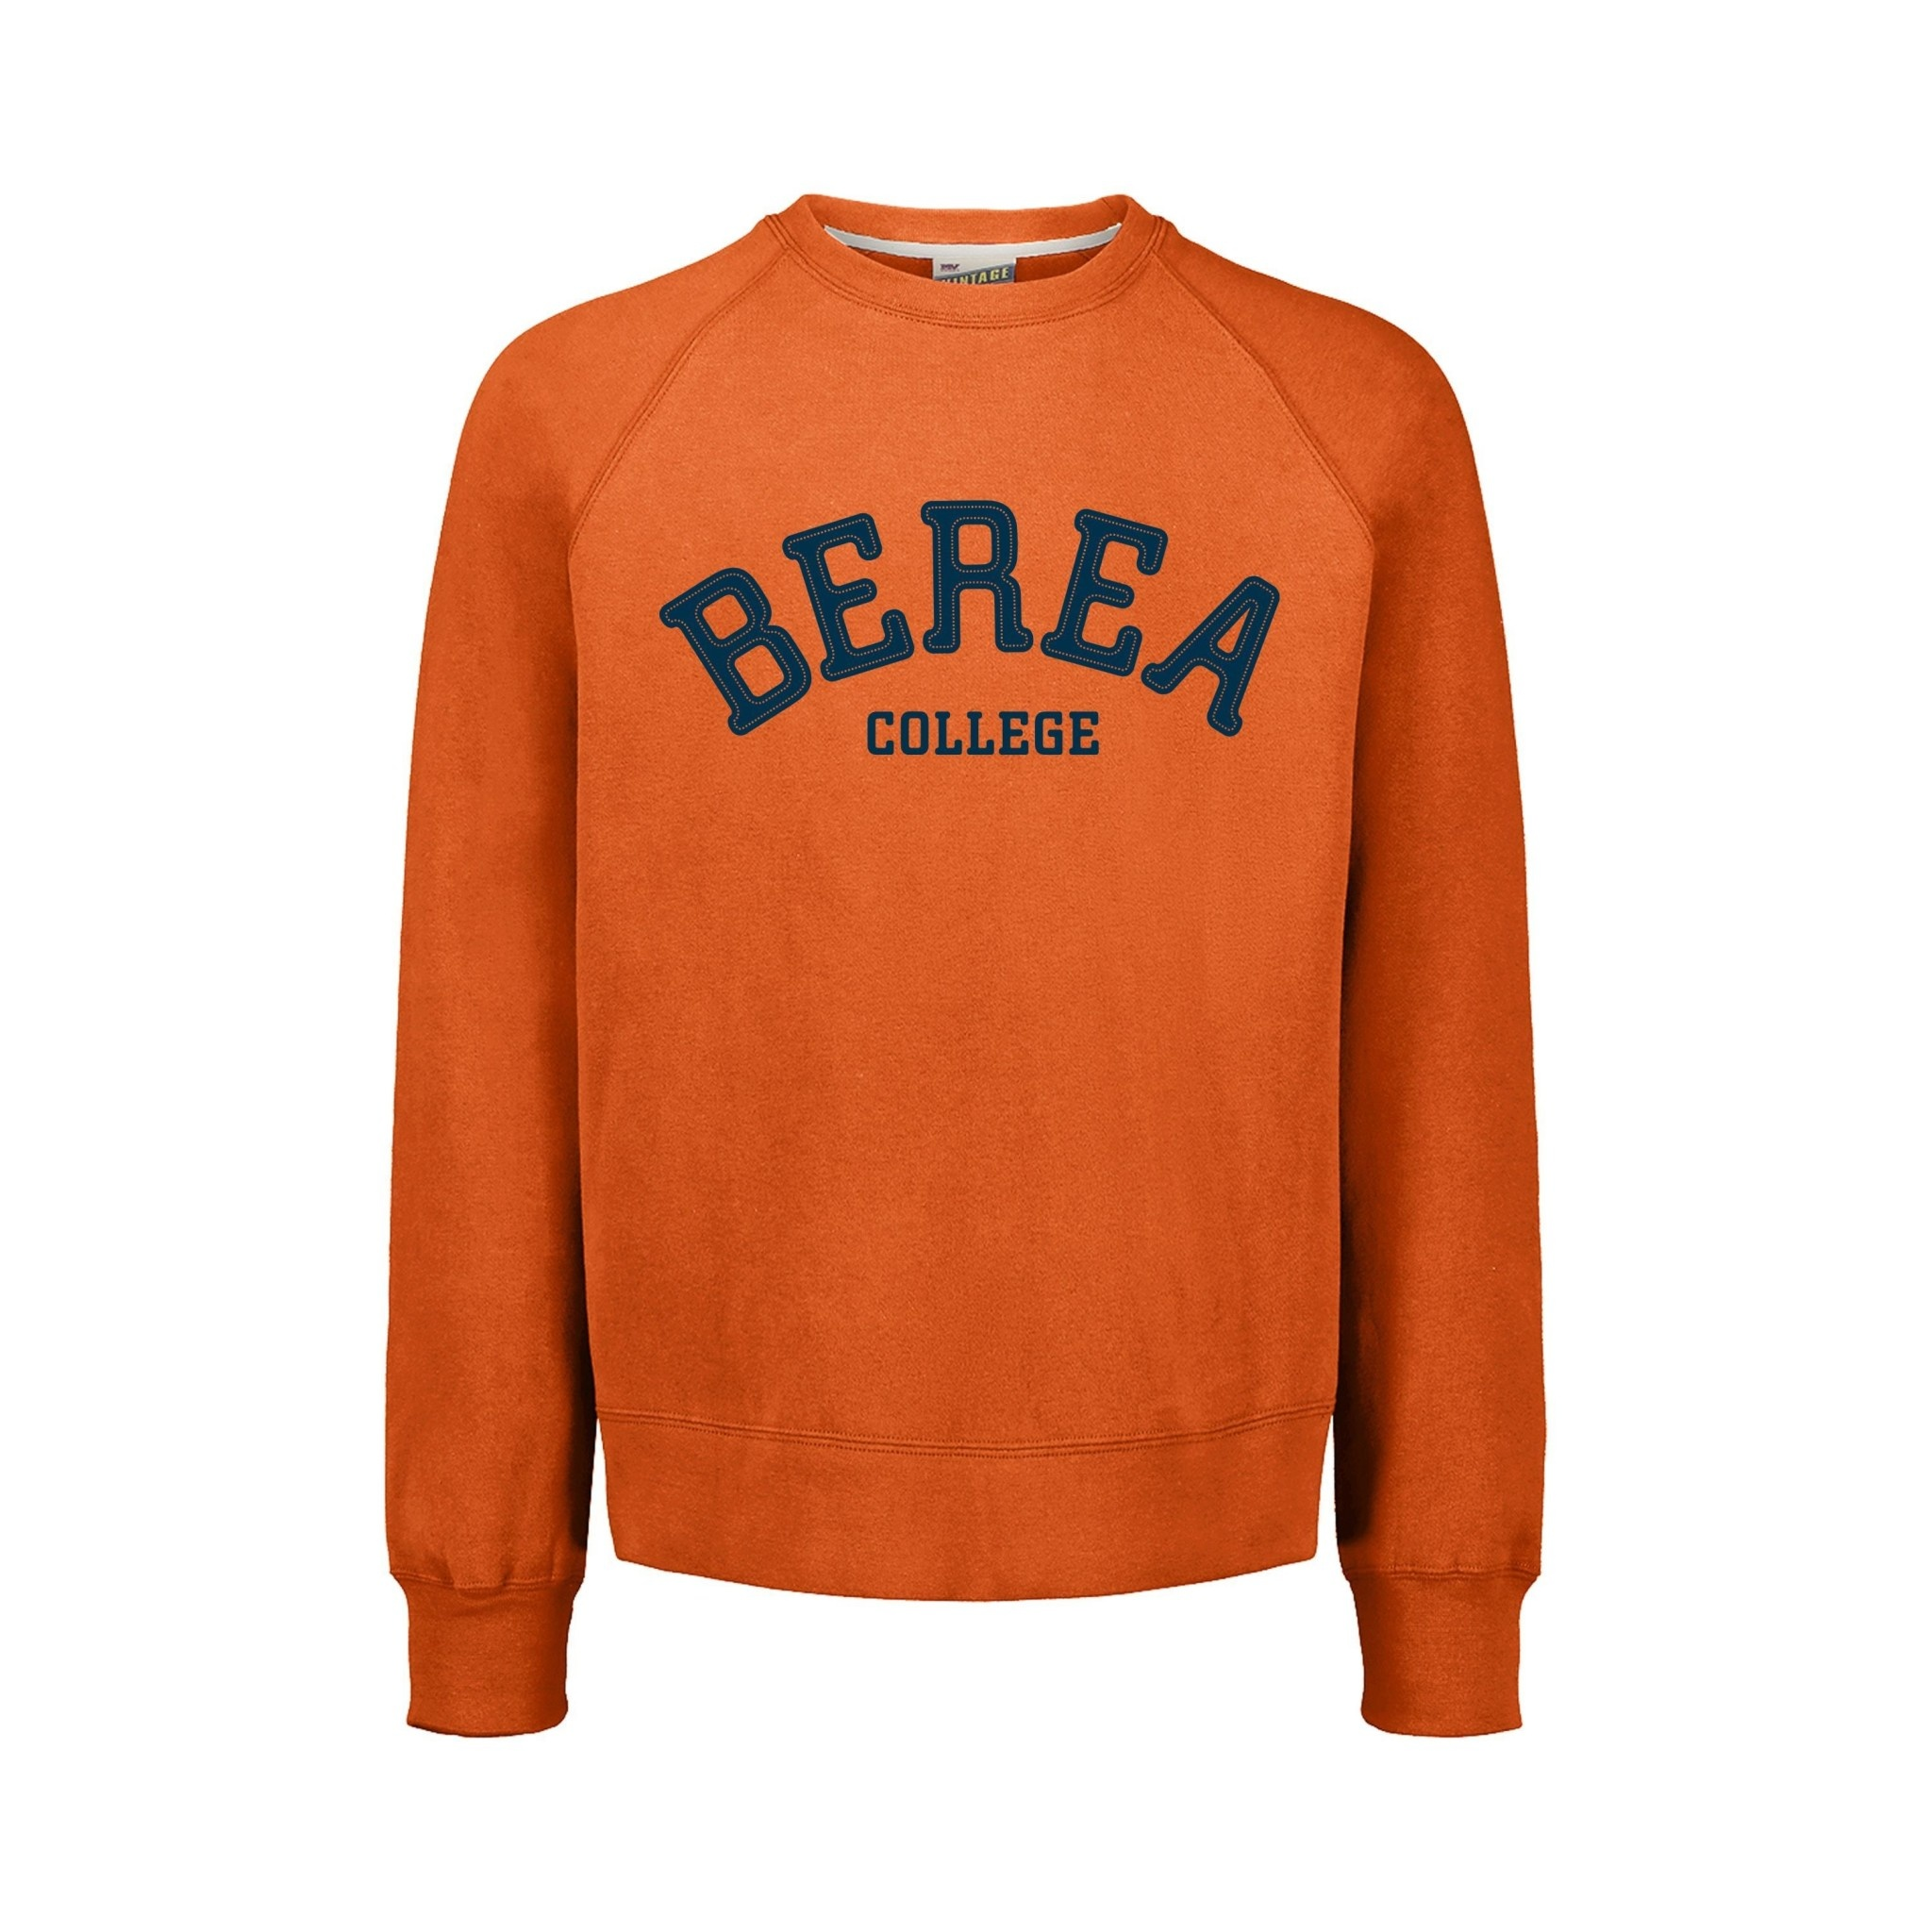 Vintage Fleece Berea College Crewneck-1